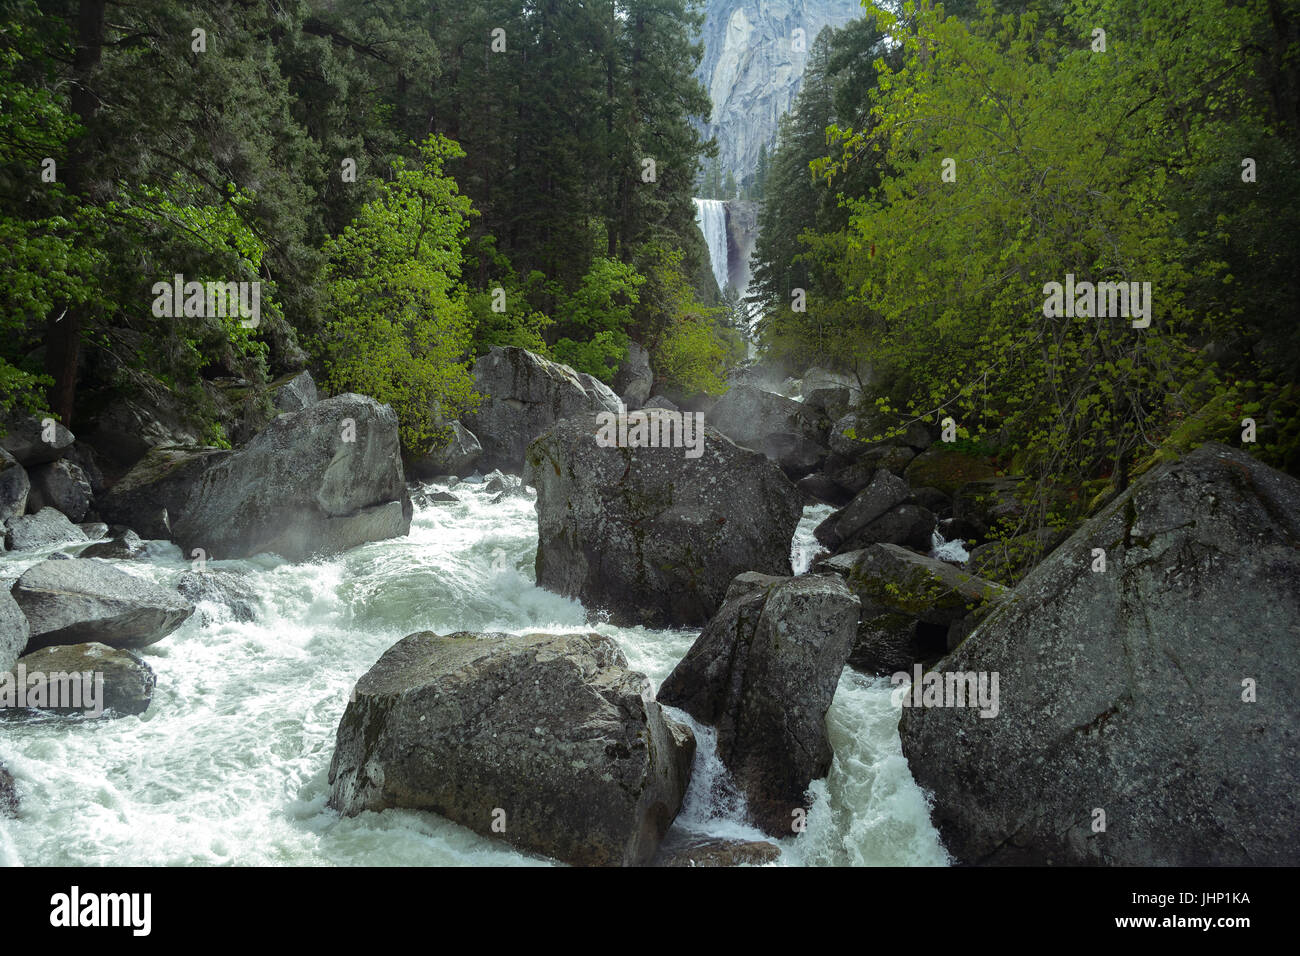 Rushing river and forest with Vernal Falls in the background at Yosemite National Park - photography by Paul Toillion Stock Photo